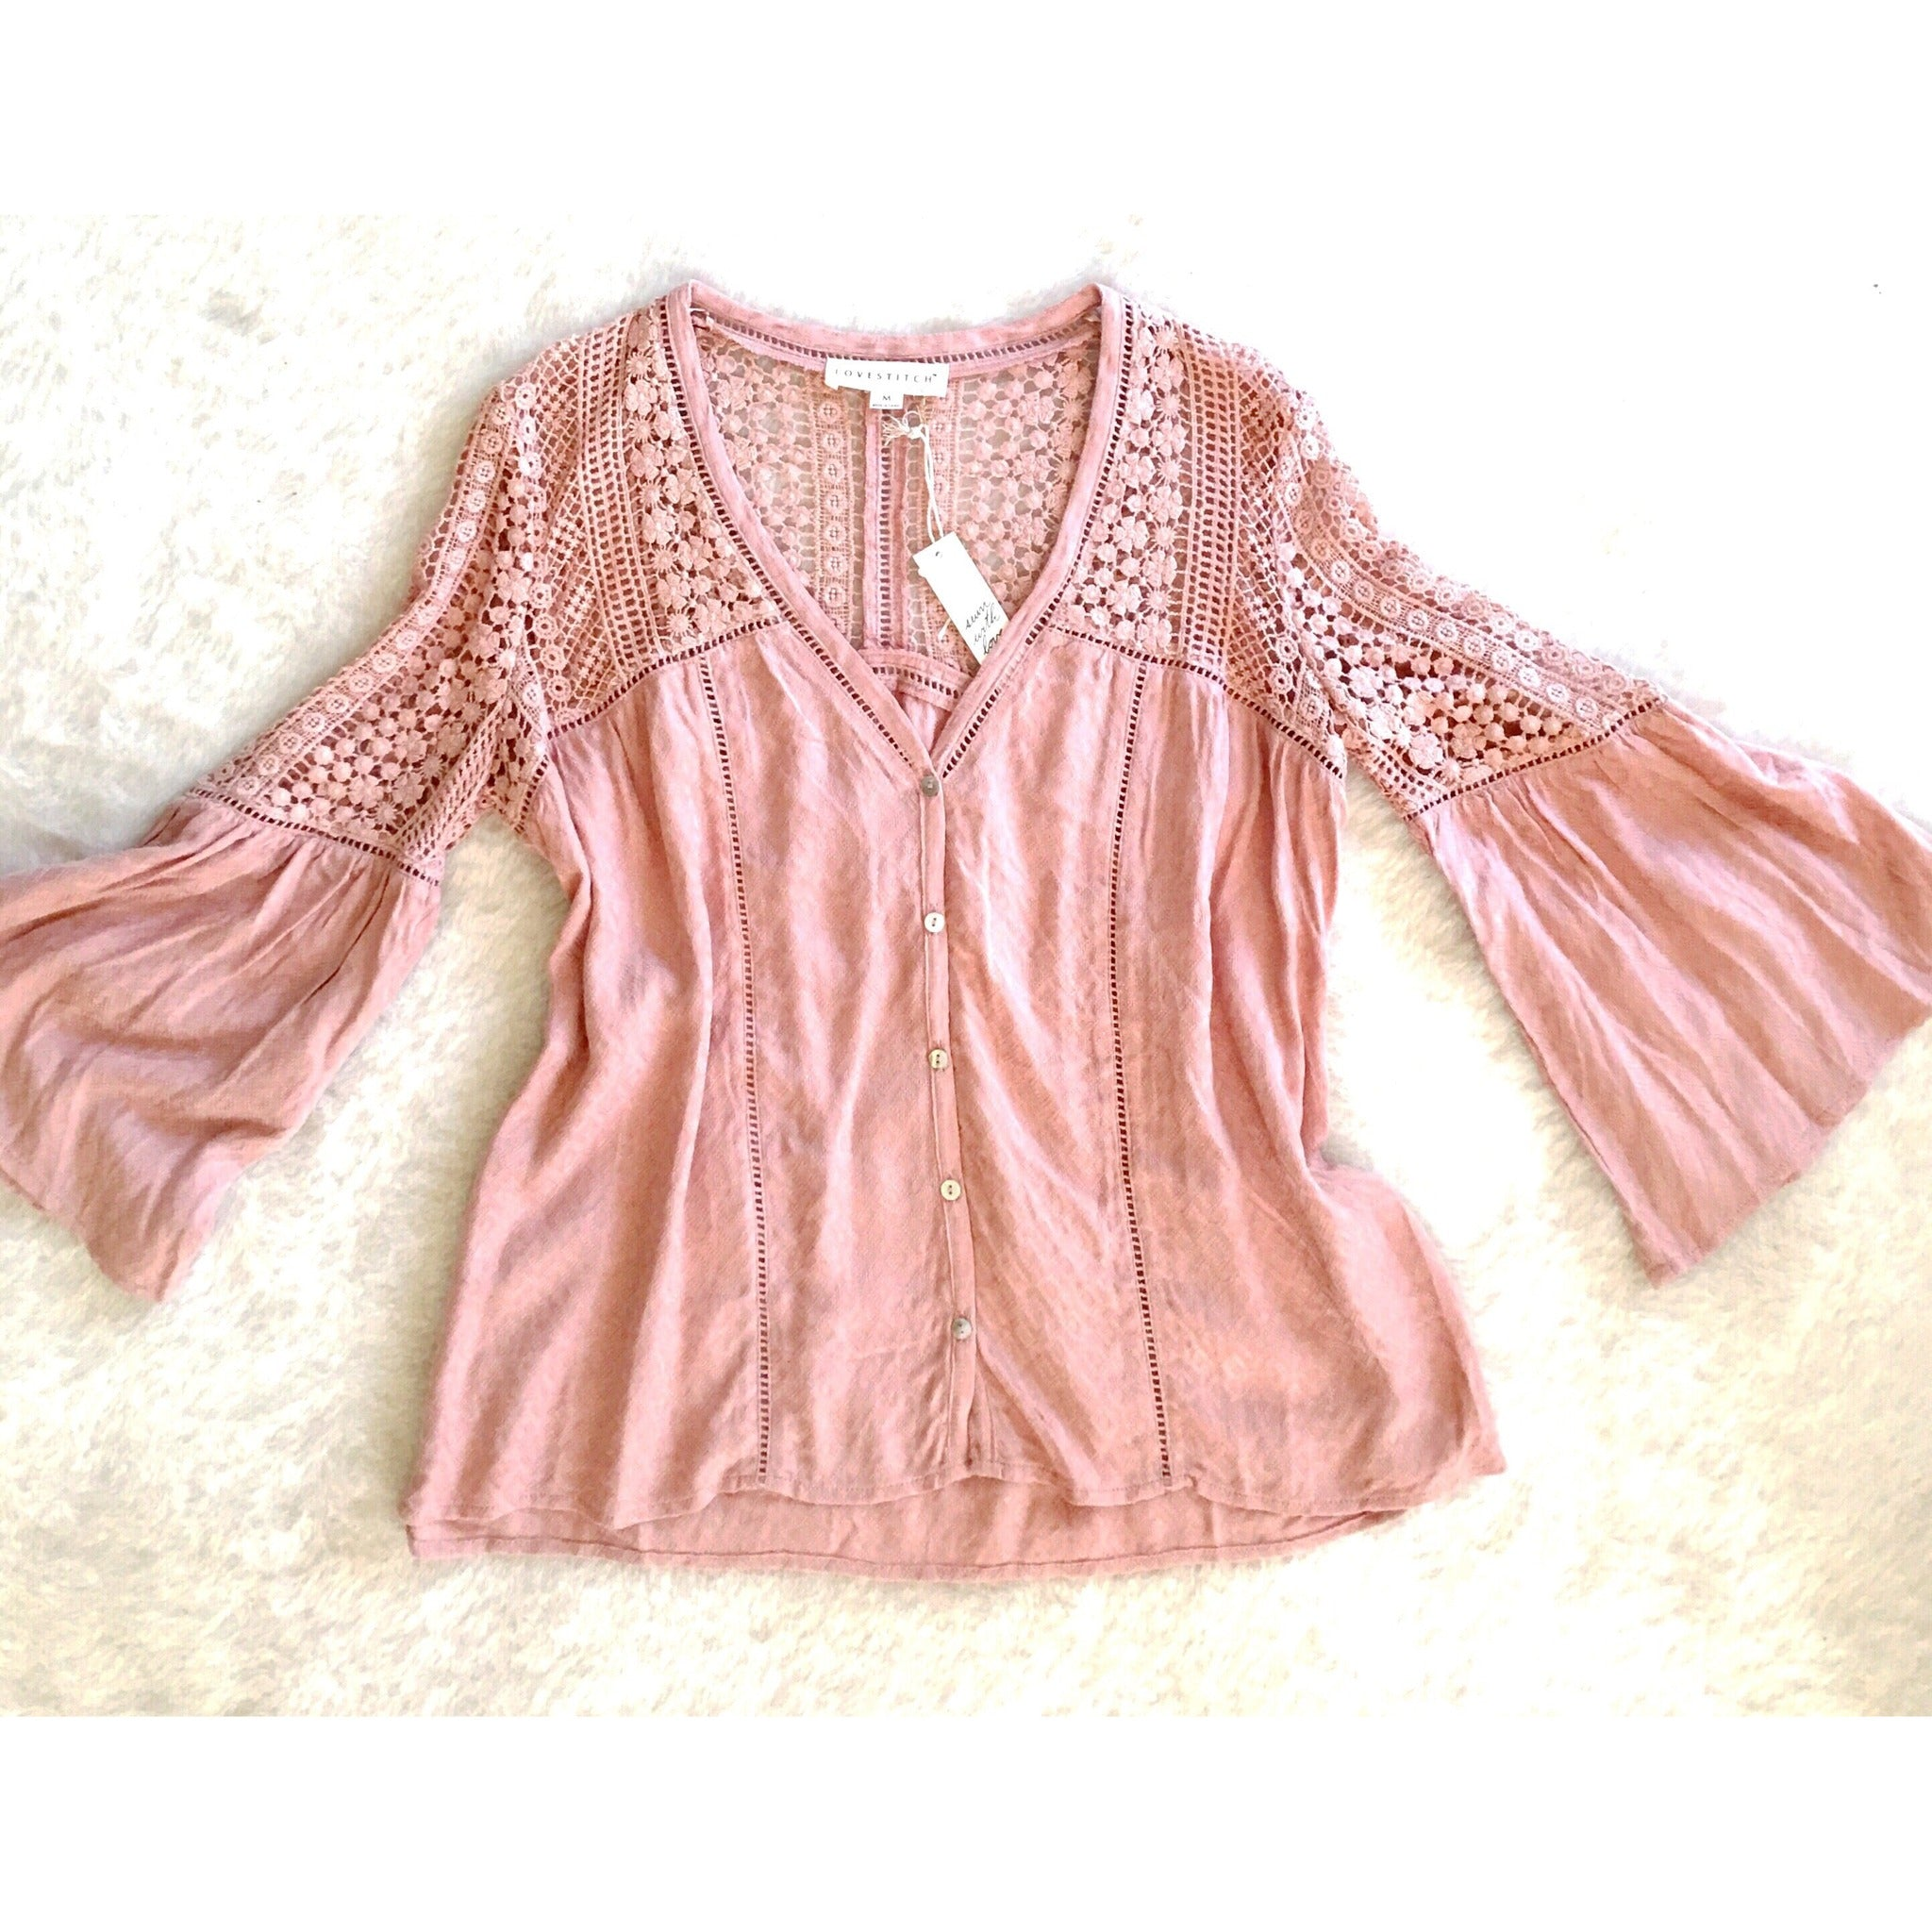 Adeline Bohemian Top in Pink Sand by Lovestitch